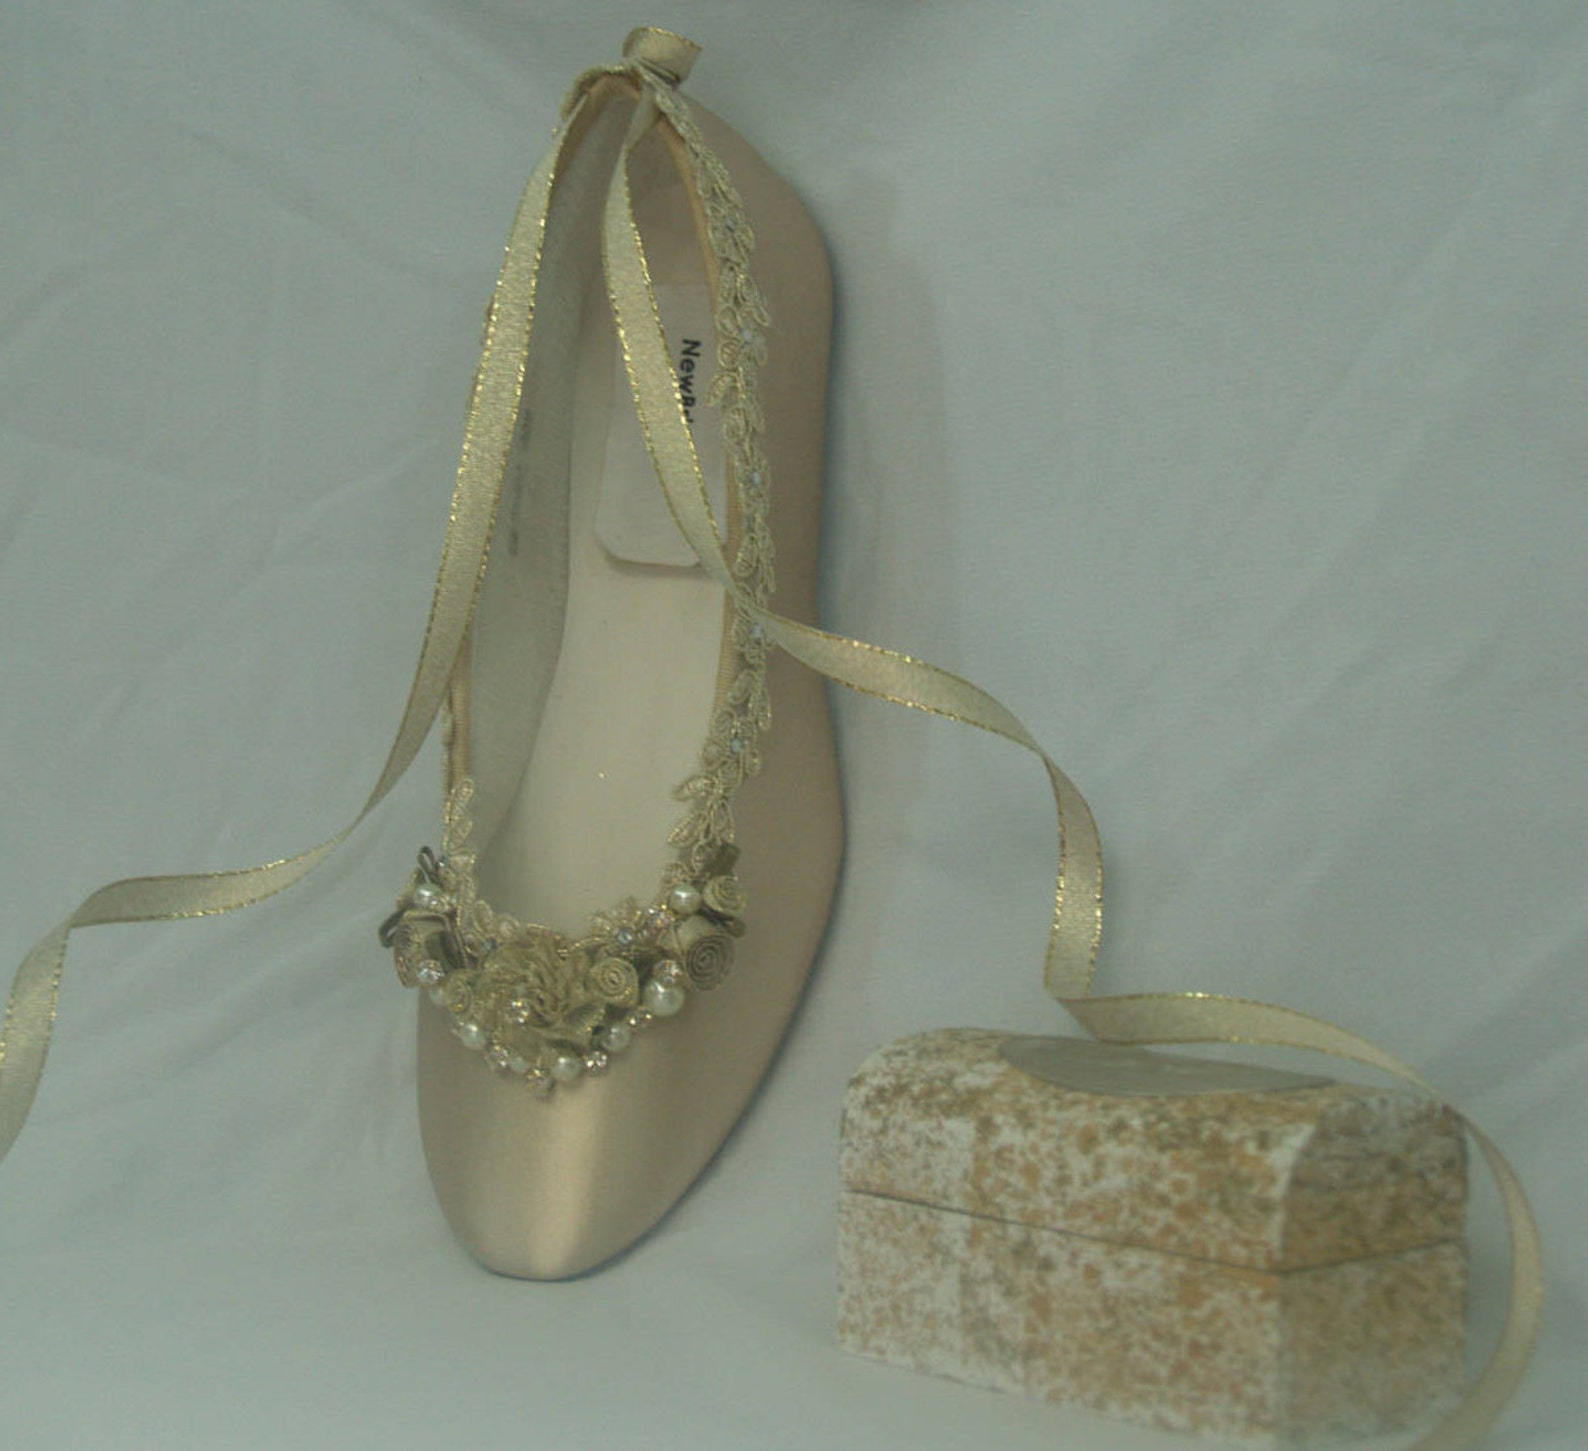 wedding size 6 flats champagne gold hand dyed, gold rosette flowers ready to ship, pearls & crystals, lace up ballet style slipp